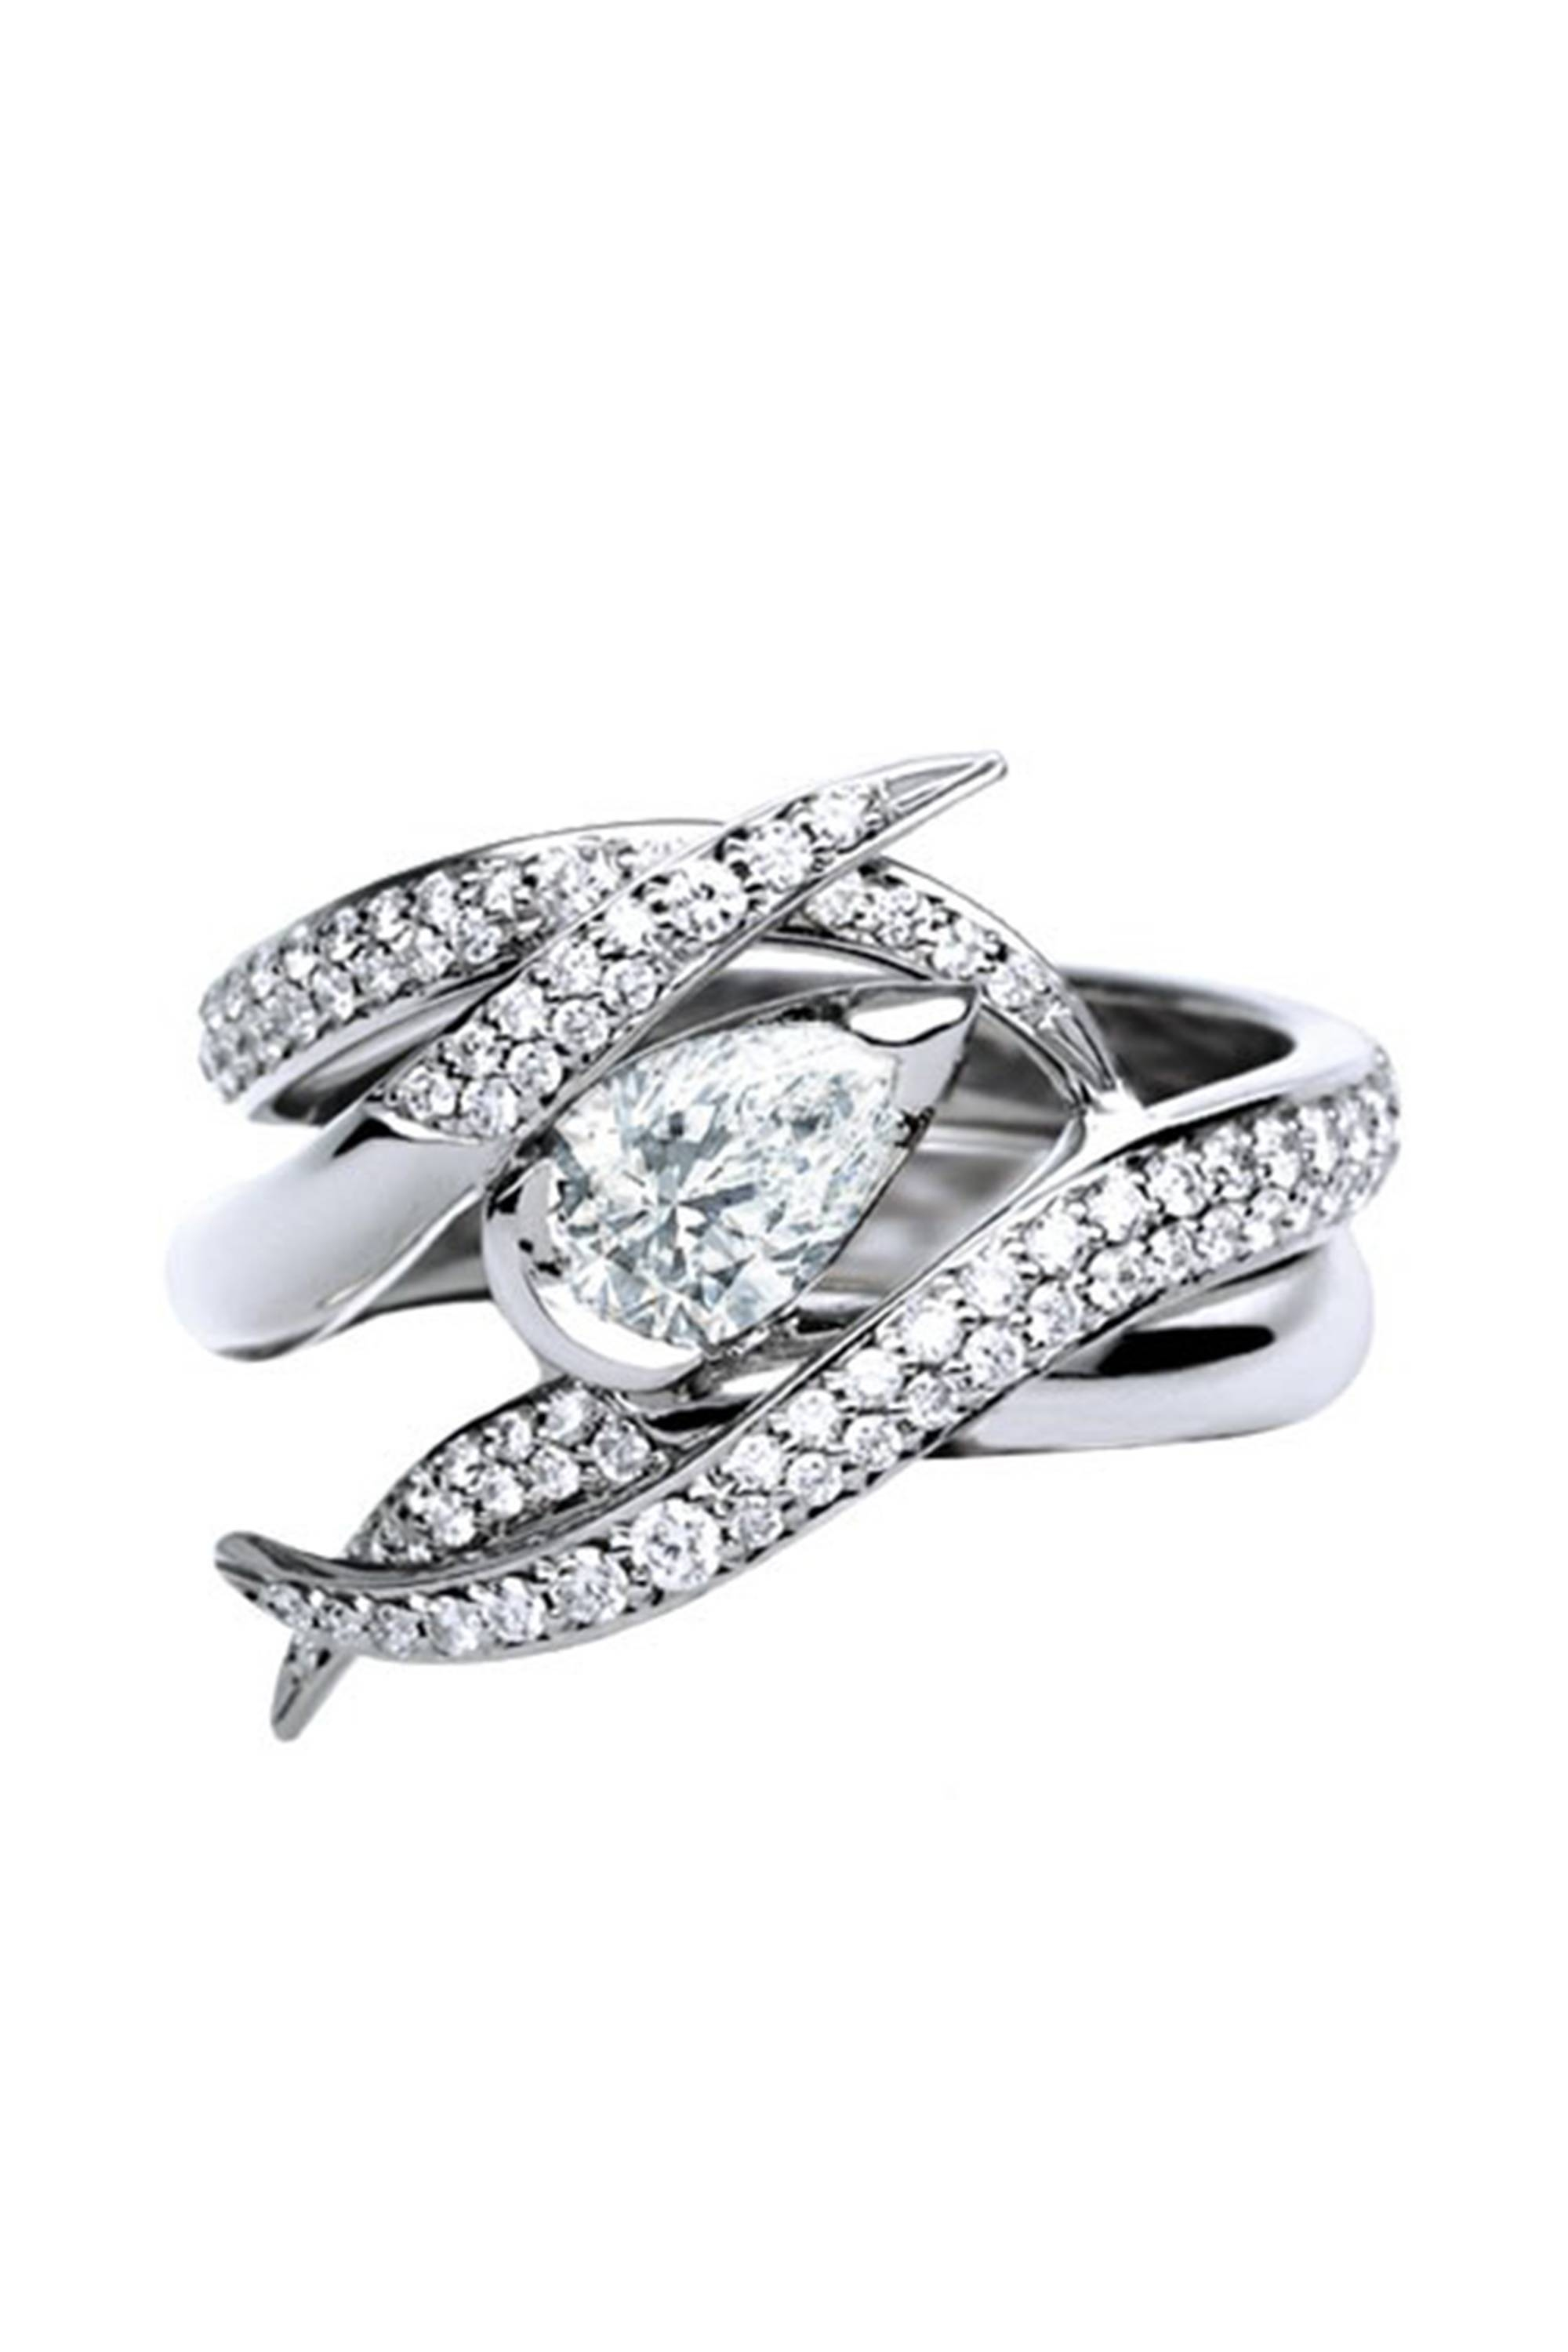 near kays wedding stores of jewelry jewelers lovely outlet kay me rings engagement now